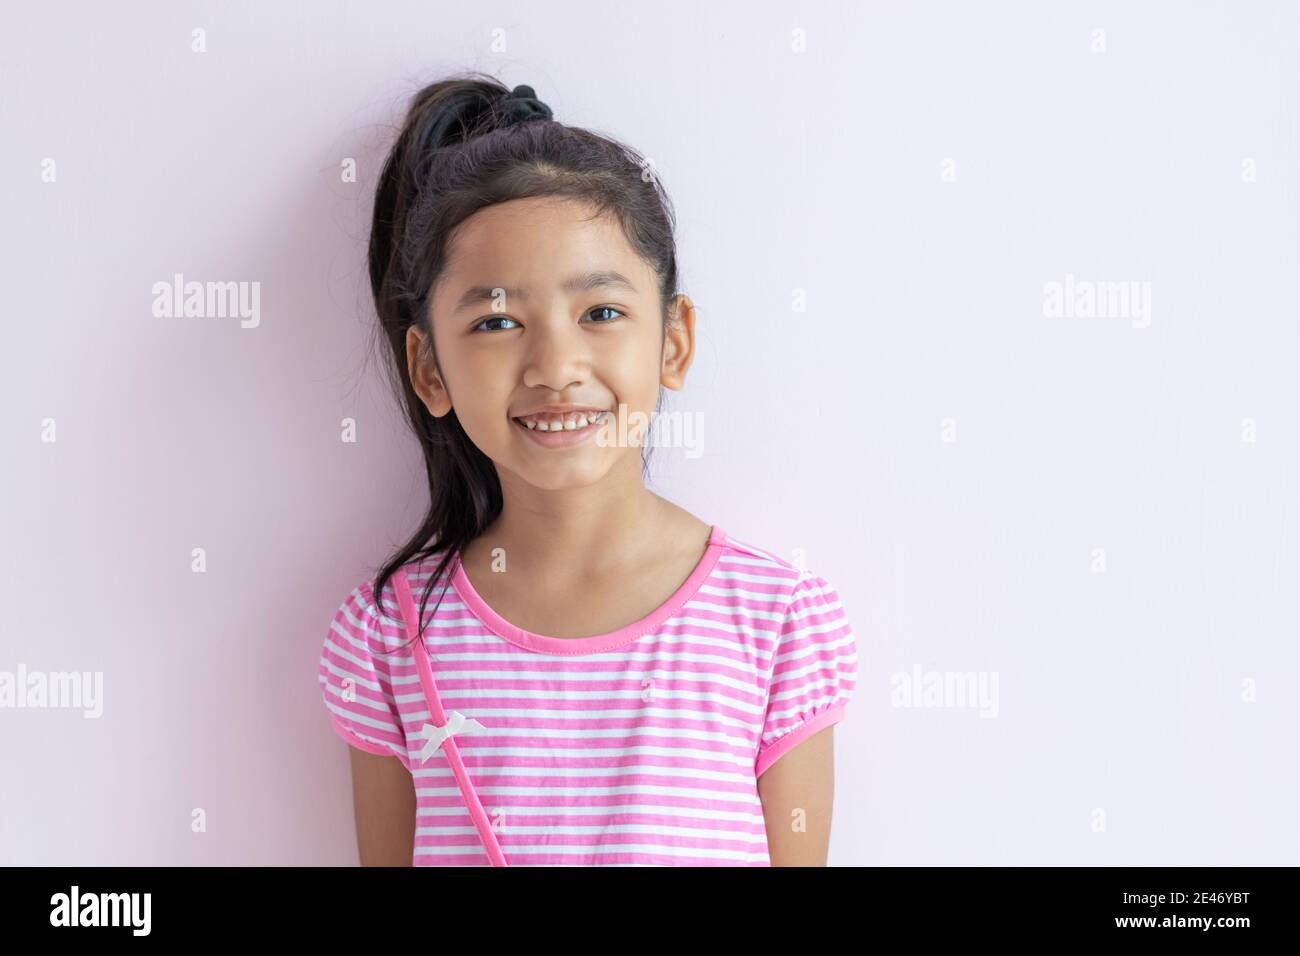 Portrait of an Asian little girl wearing a pink and white striped dress. The child tied up black hair and smiled with happiness. Stock Photo